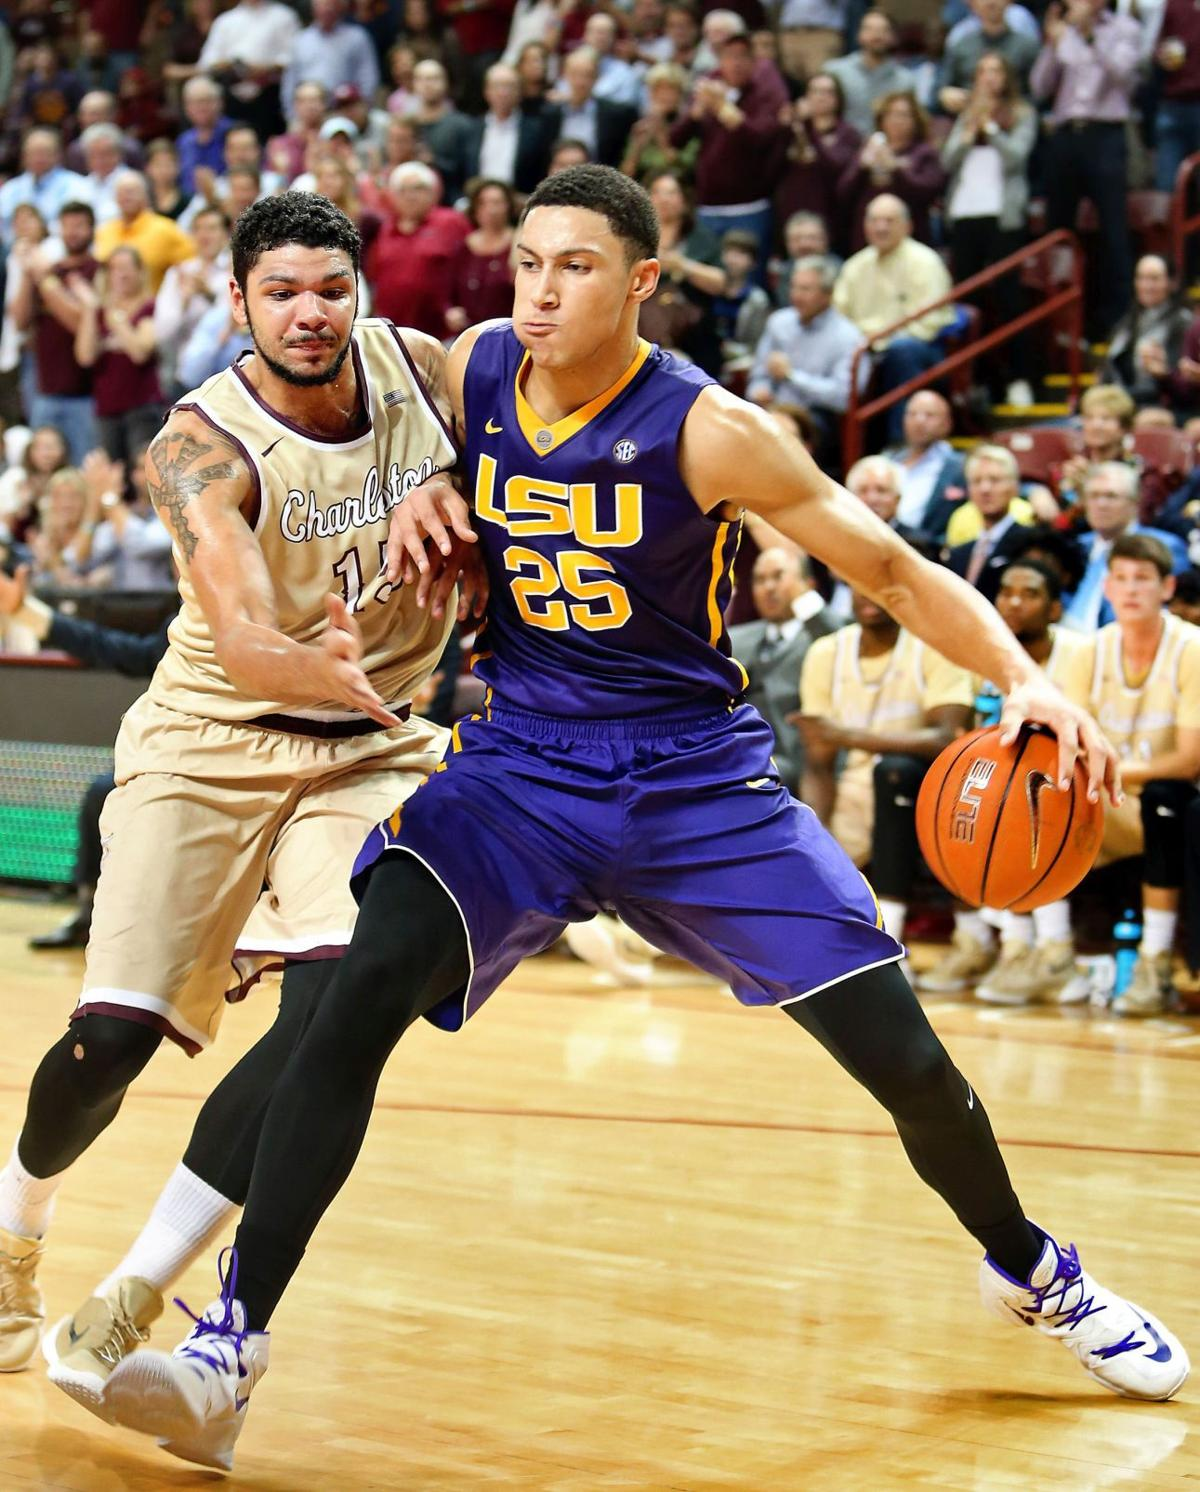 COUGARS DEN: Looking back on the LSU win